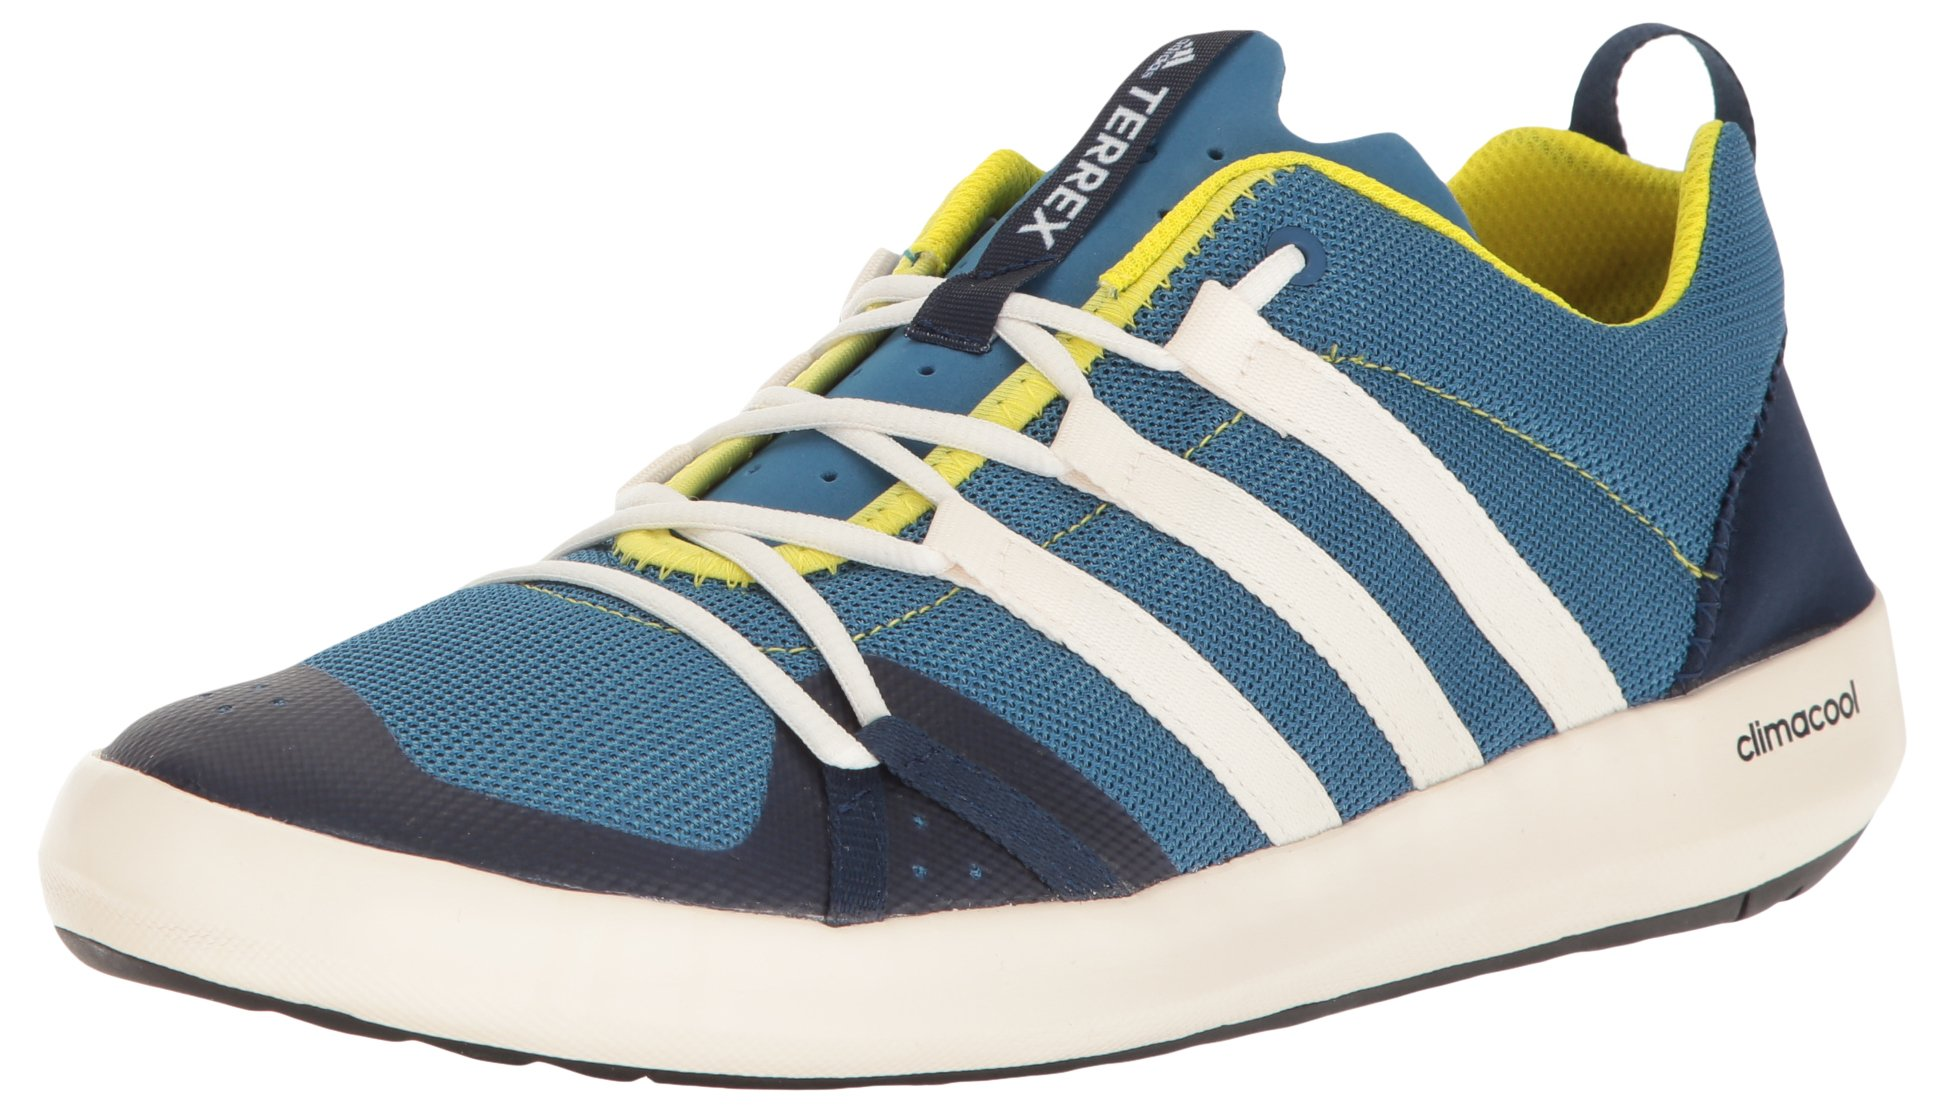 low priced 1197c 4e7d5 Galleon - Adidas Outdoor Men s Terrex Climacool Boat Water Shoe Core  Blue Chalk White Bright Yellow 12 M US